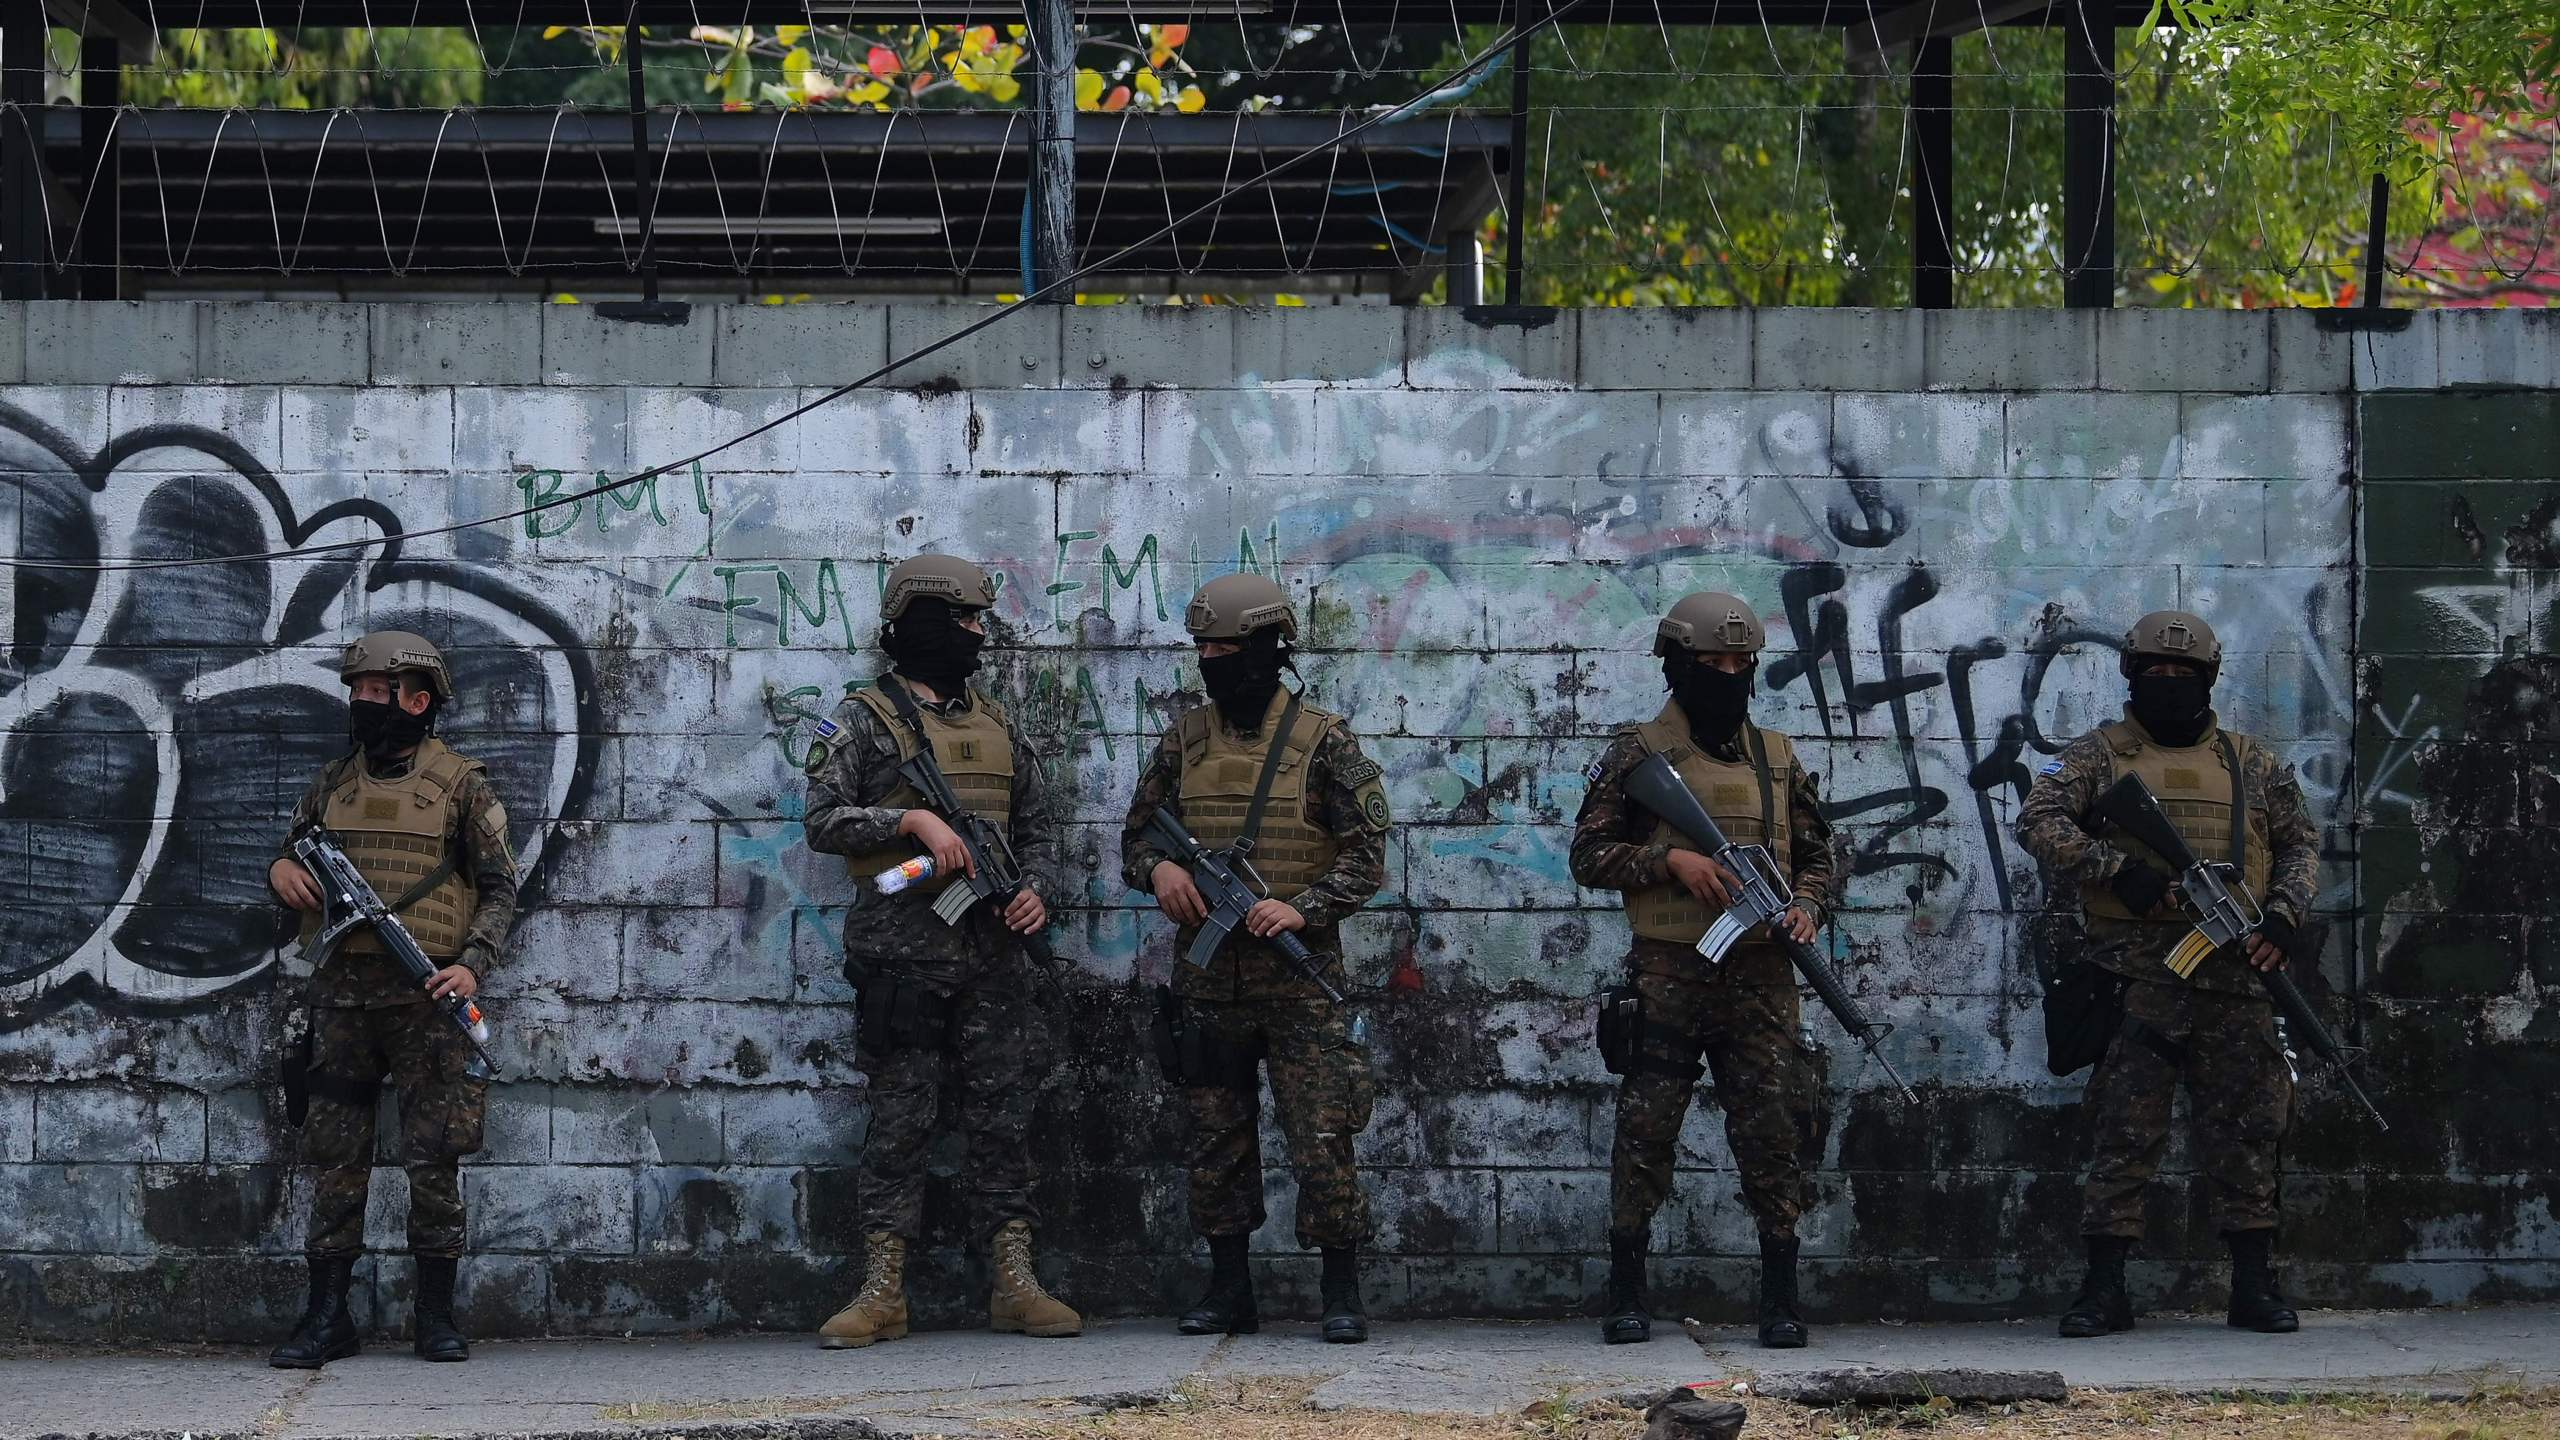 In this picture taken on February 09, 2020, soldiers guard the Legislative Assembly, in San Salvador, as supporters of Salvadoran President Nayib Bukele gather outside it to make pressure on deputies to approve a loan to invest in security. (MARVIN RECINOS/AFP via Getty Images)